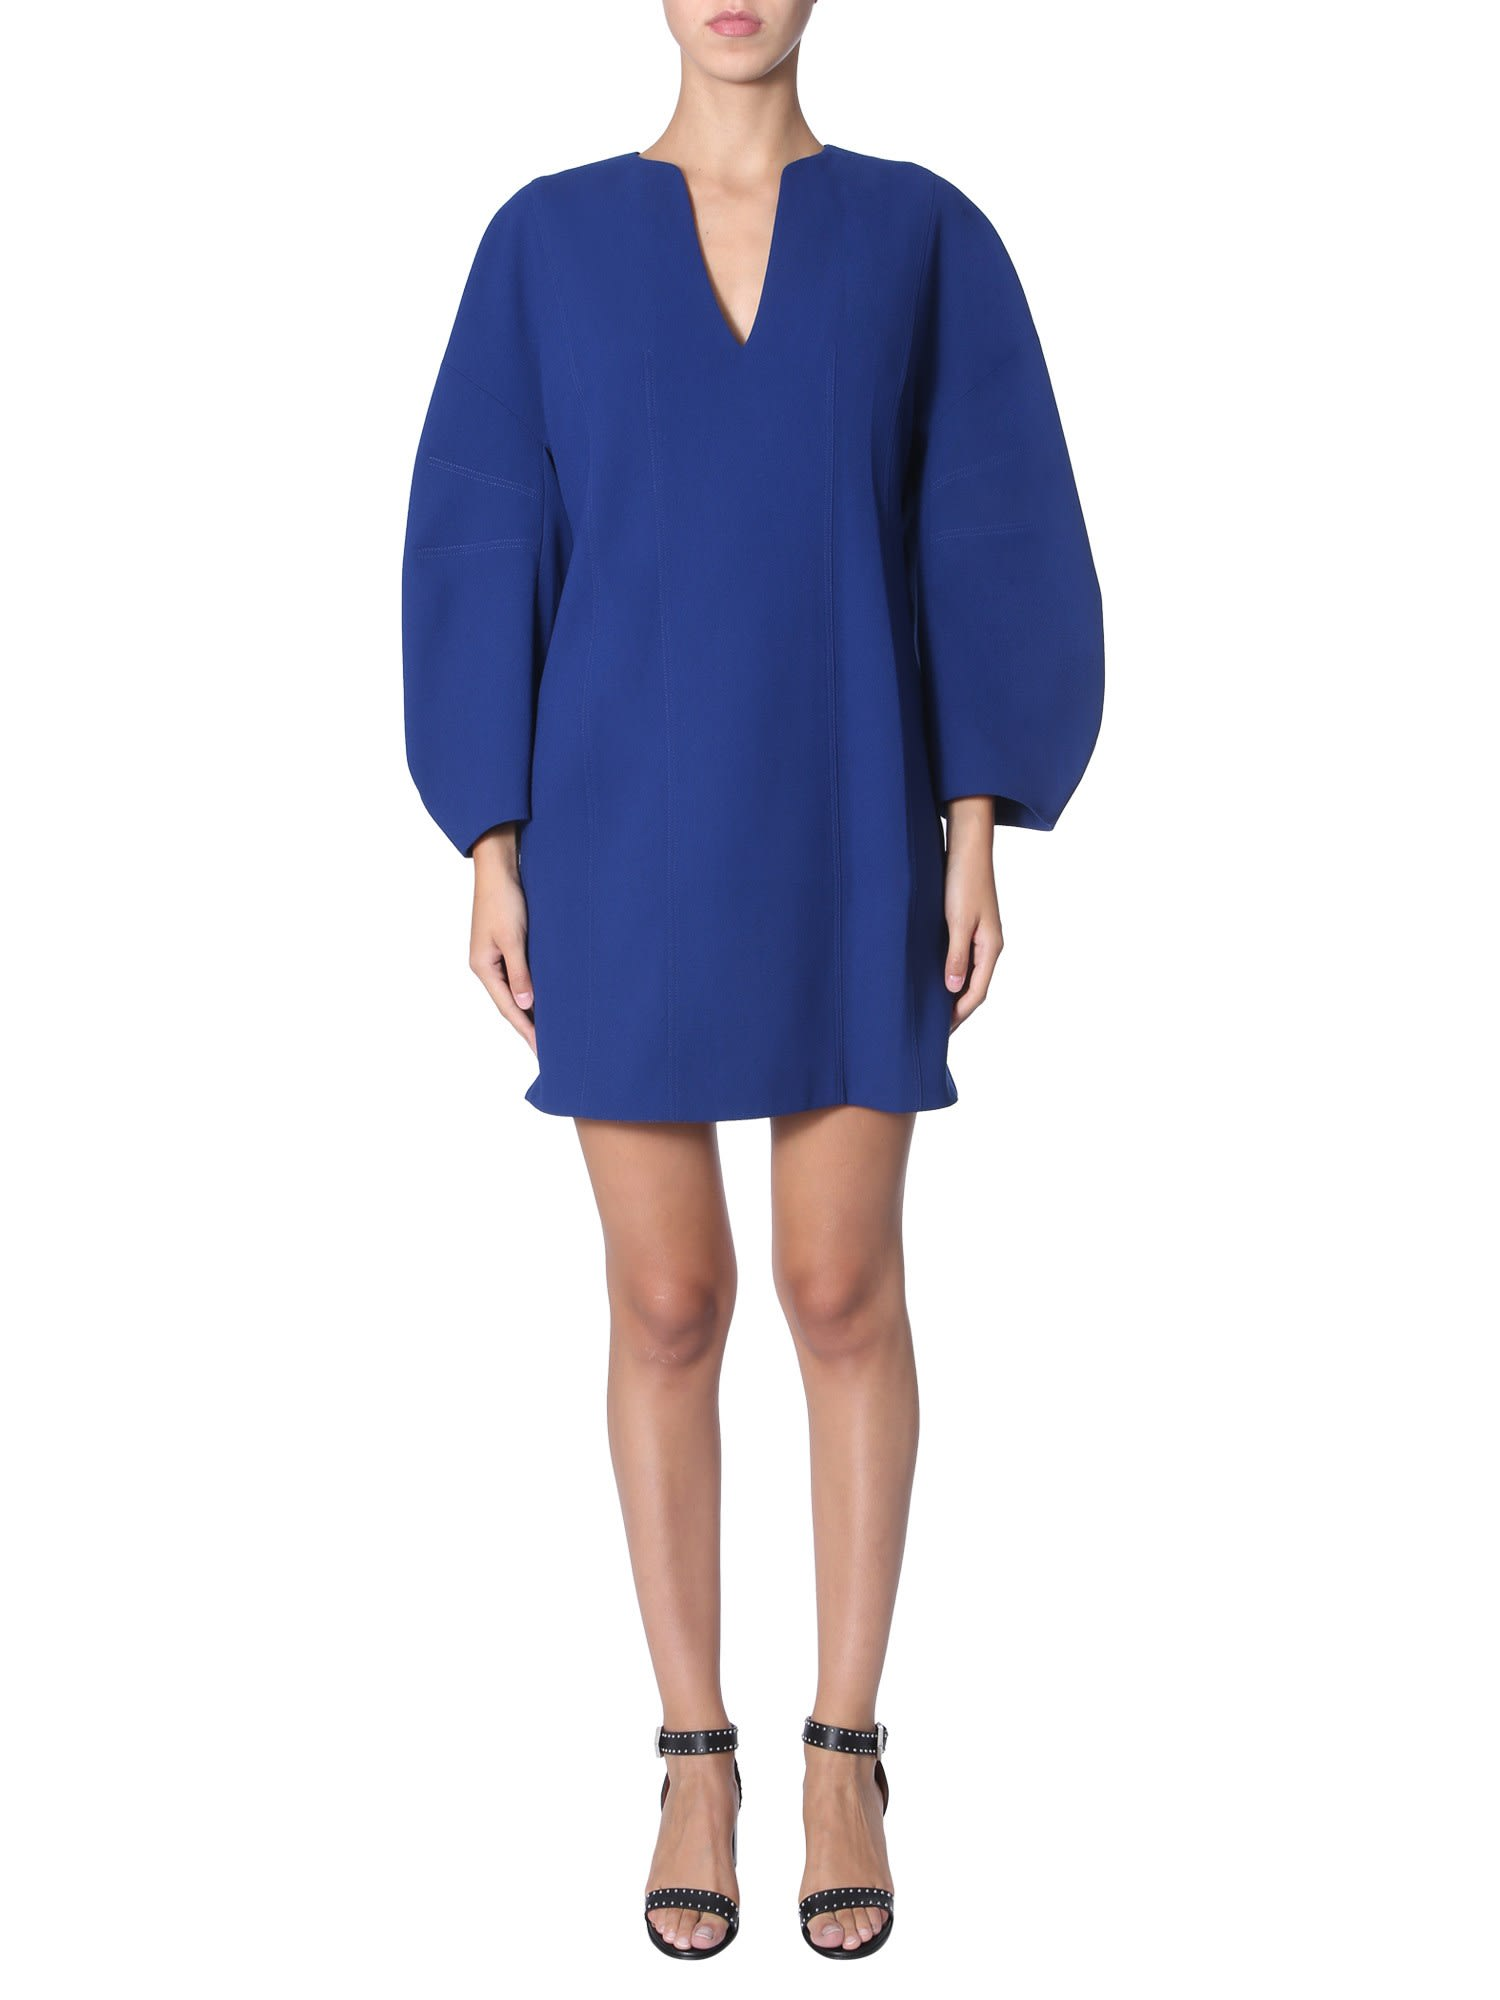 Givenchy Puffed Sleeves Dress